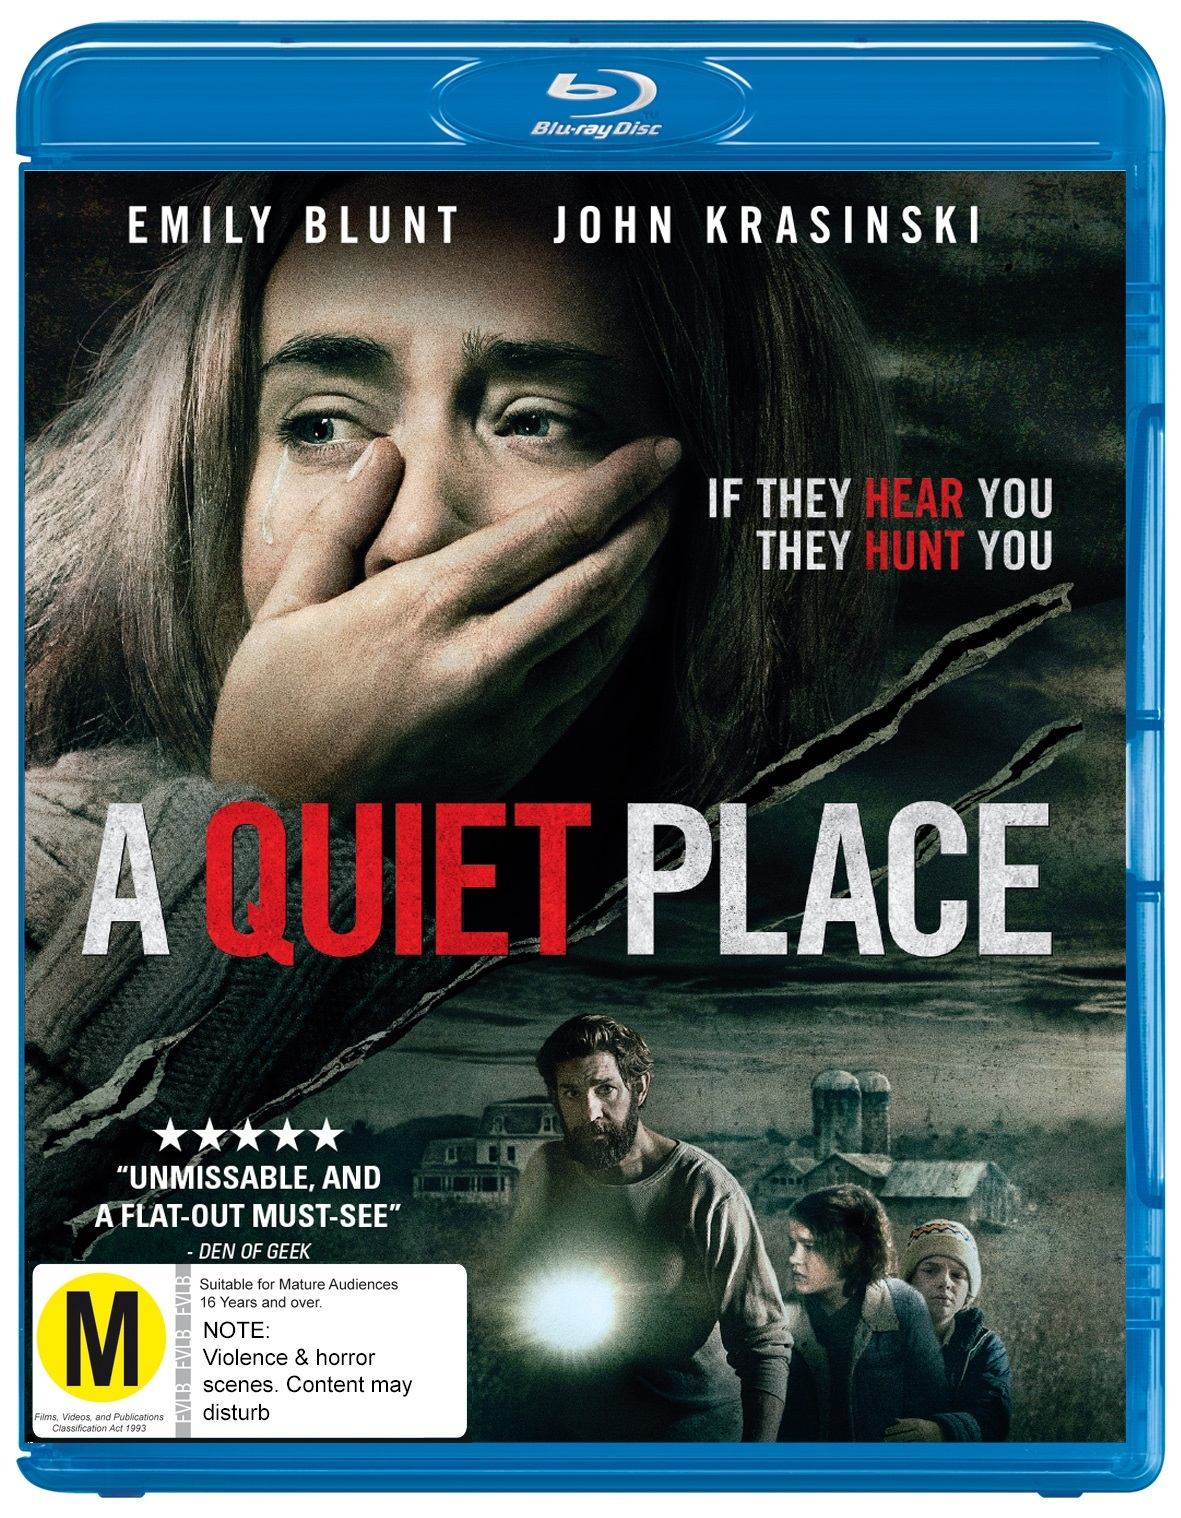 A Quiet Place on Blu-ray image